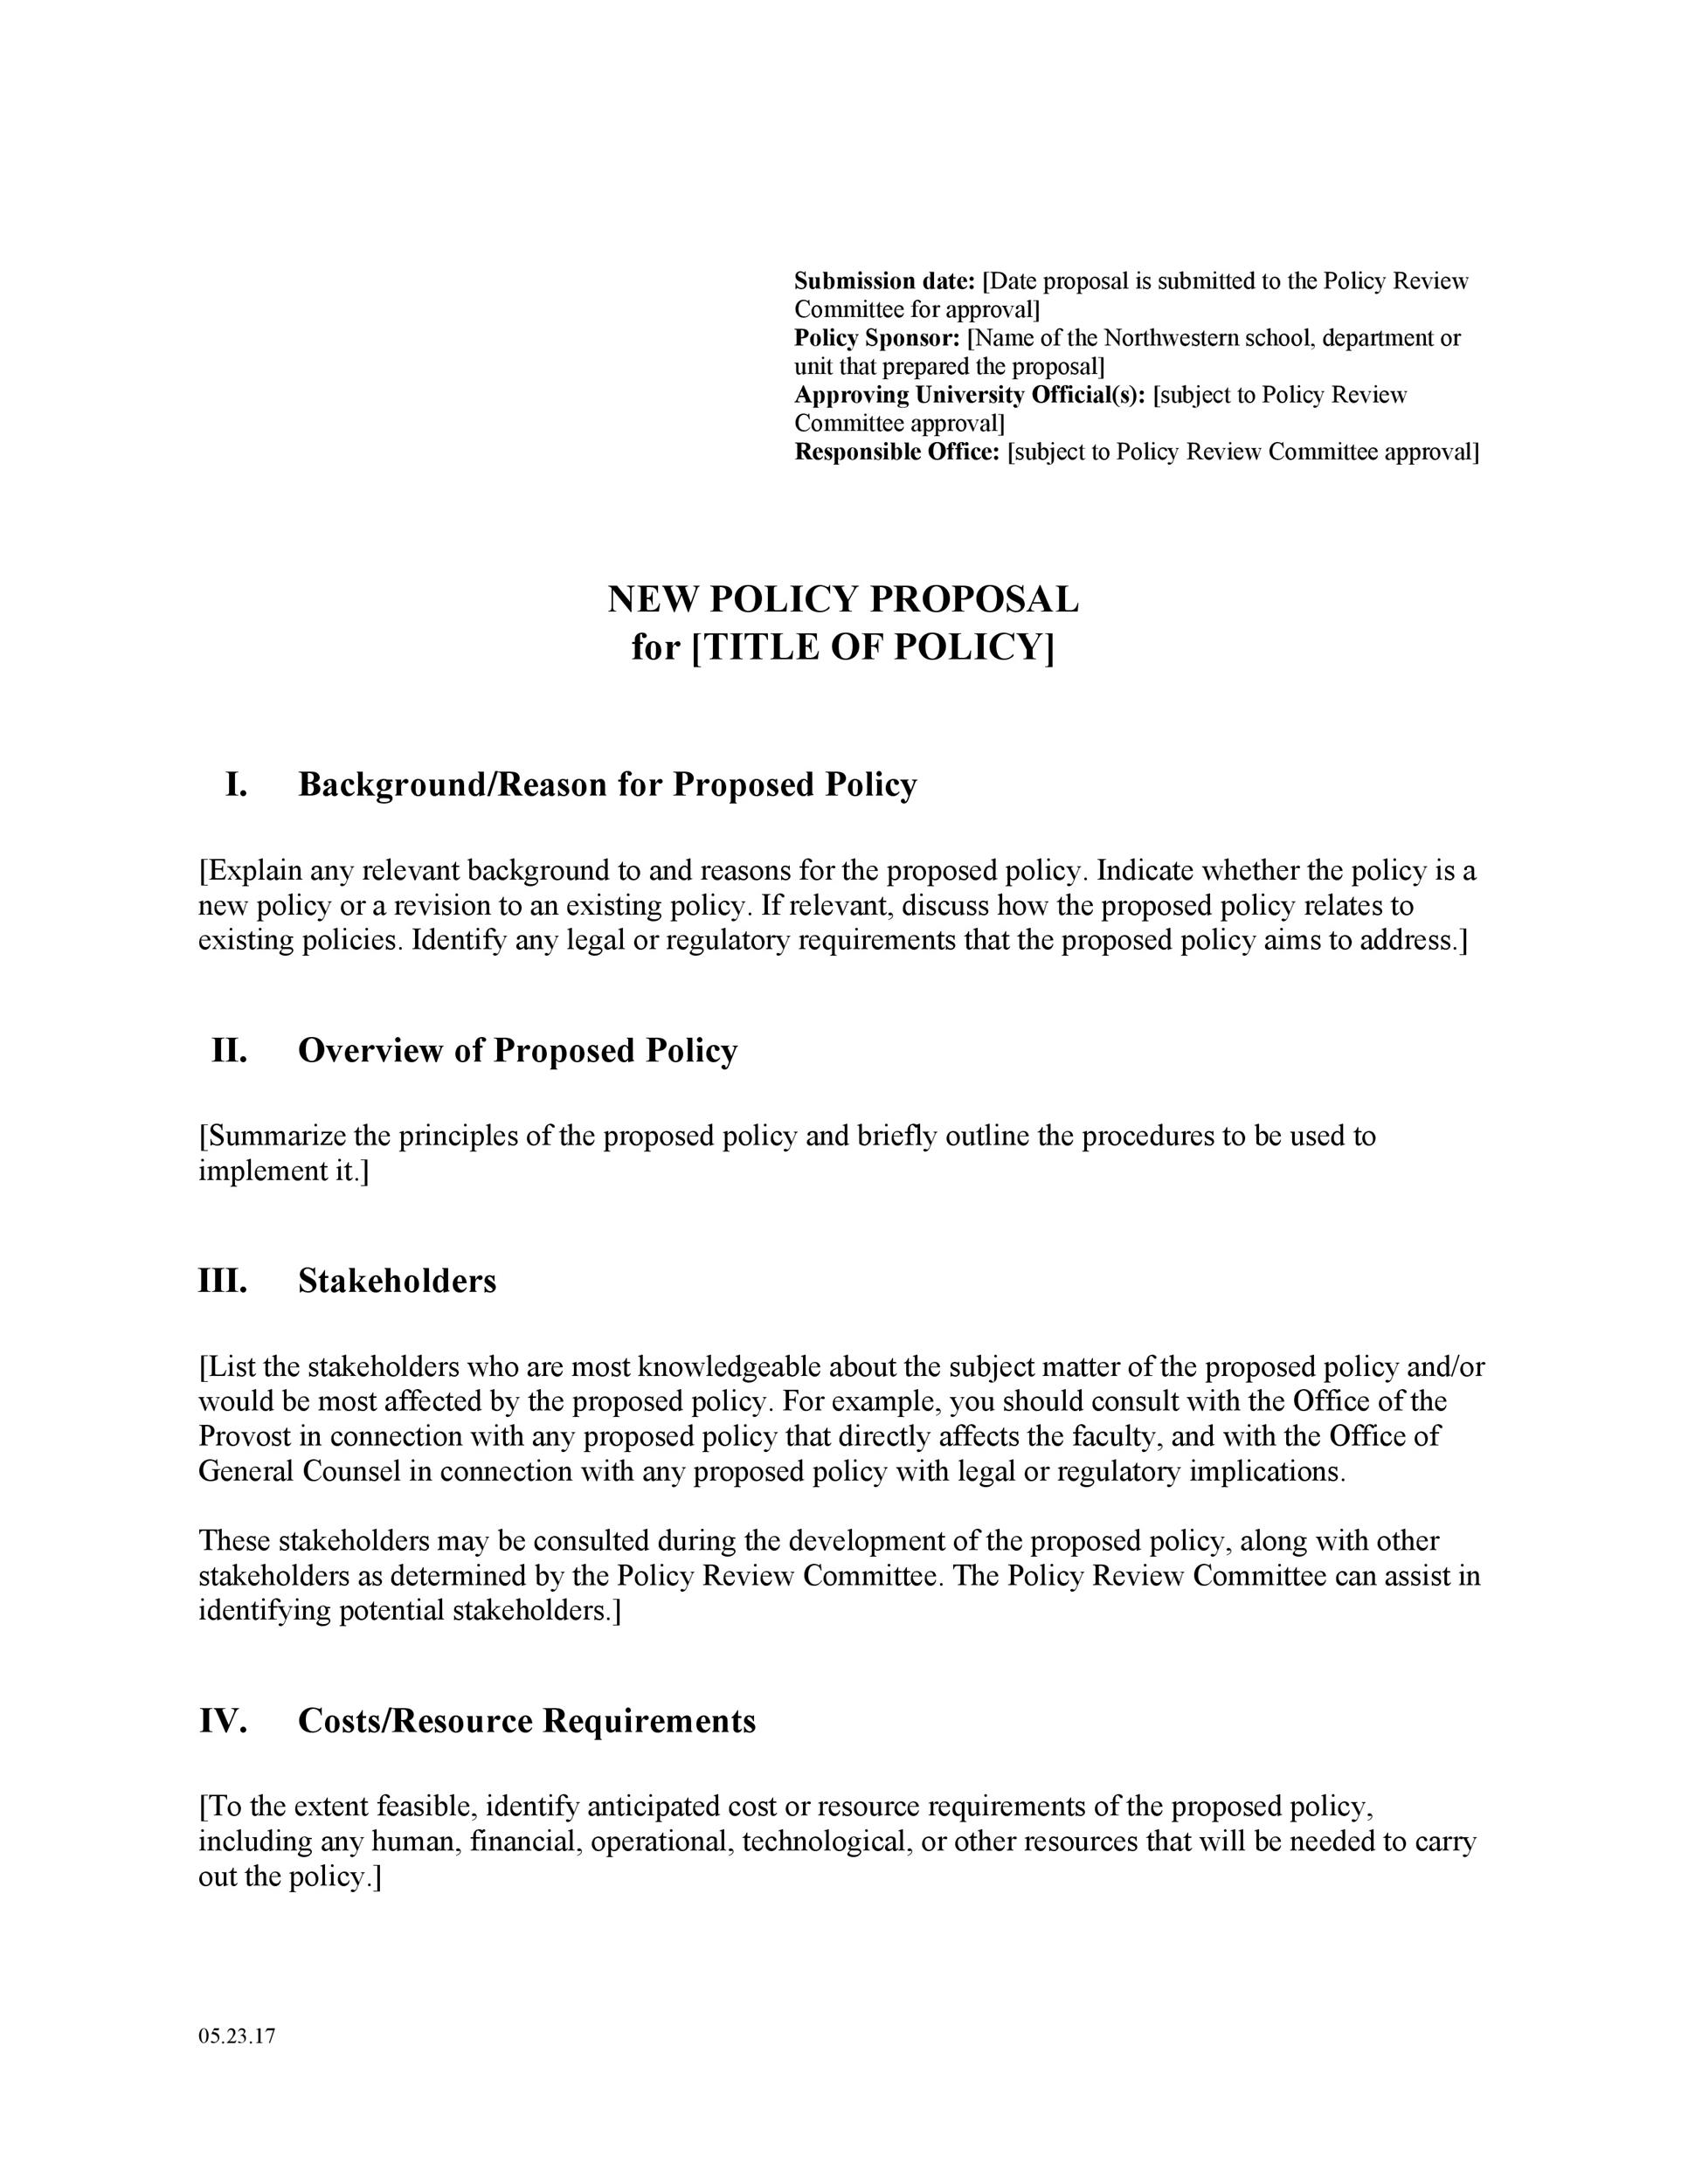 30 Professional Policy Proposal Templates Examples ᐅ